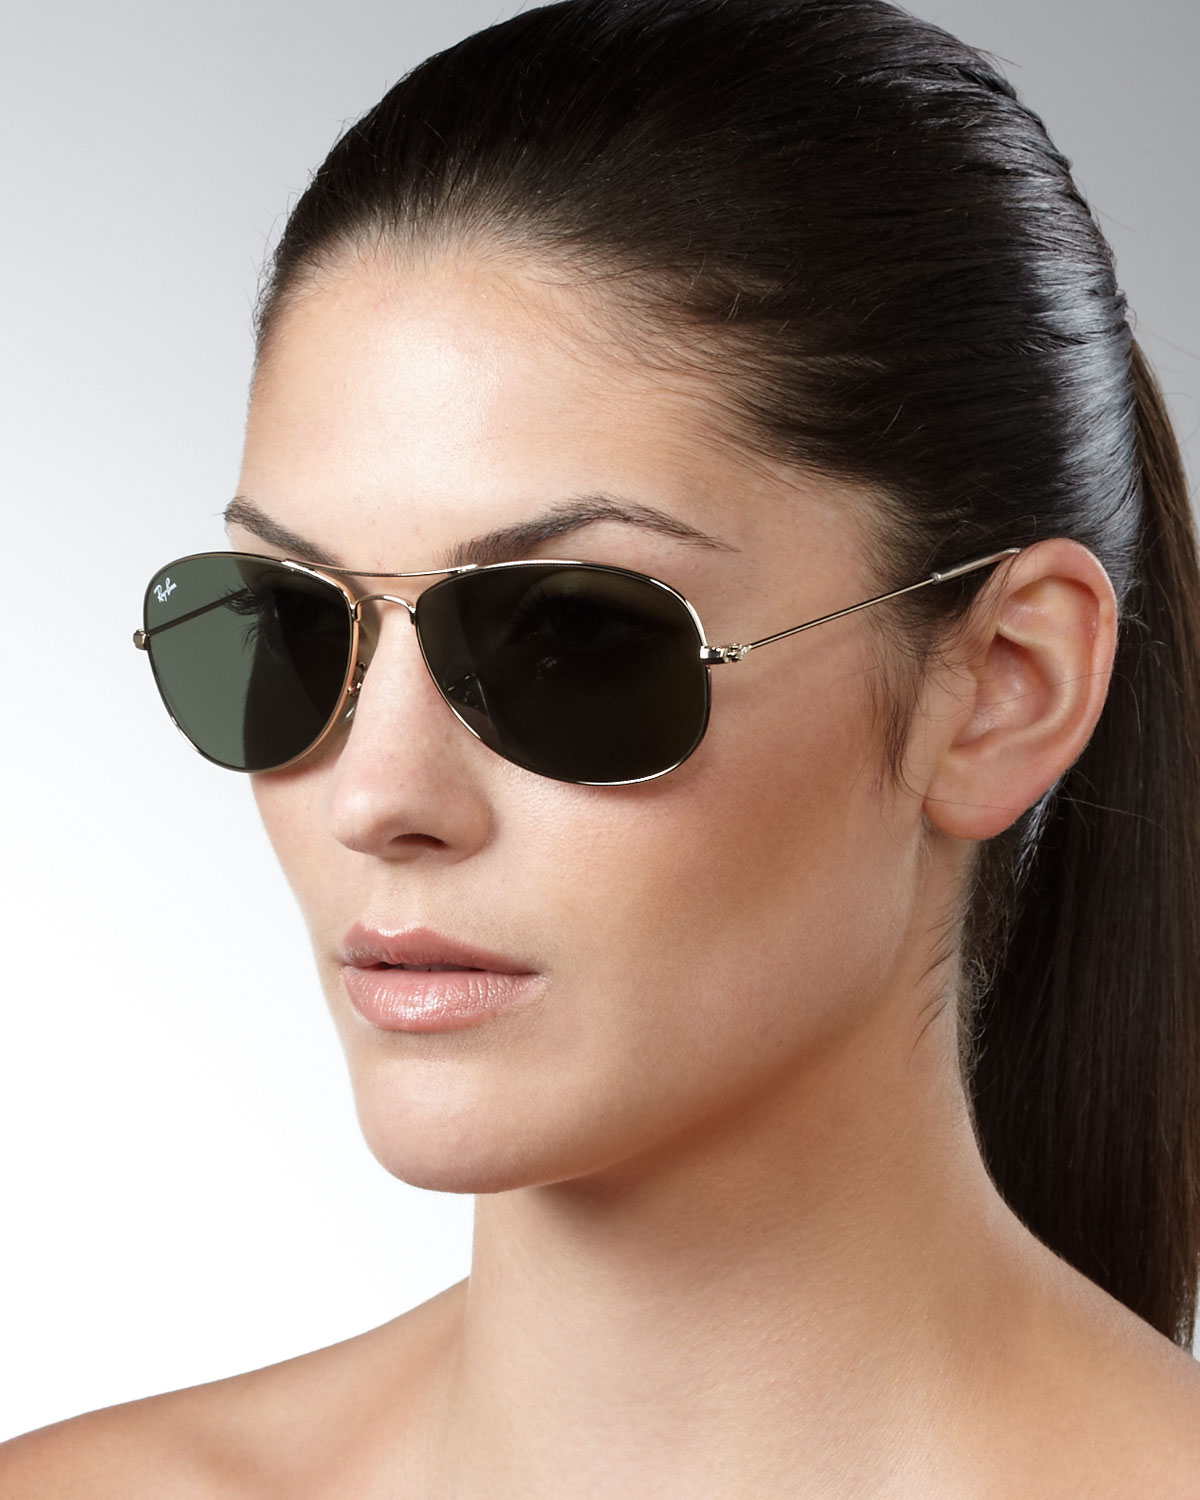 Lyst - Ray-Ban Aviator Sunglasses in Metallic ea4dec95899c